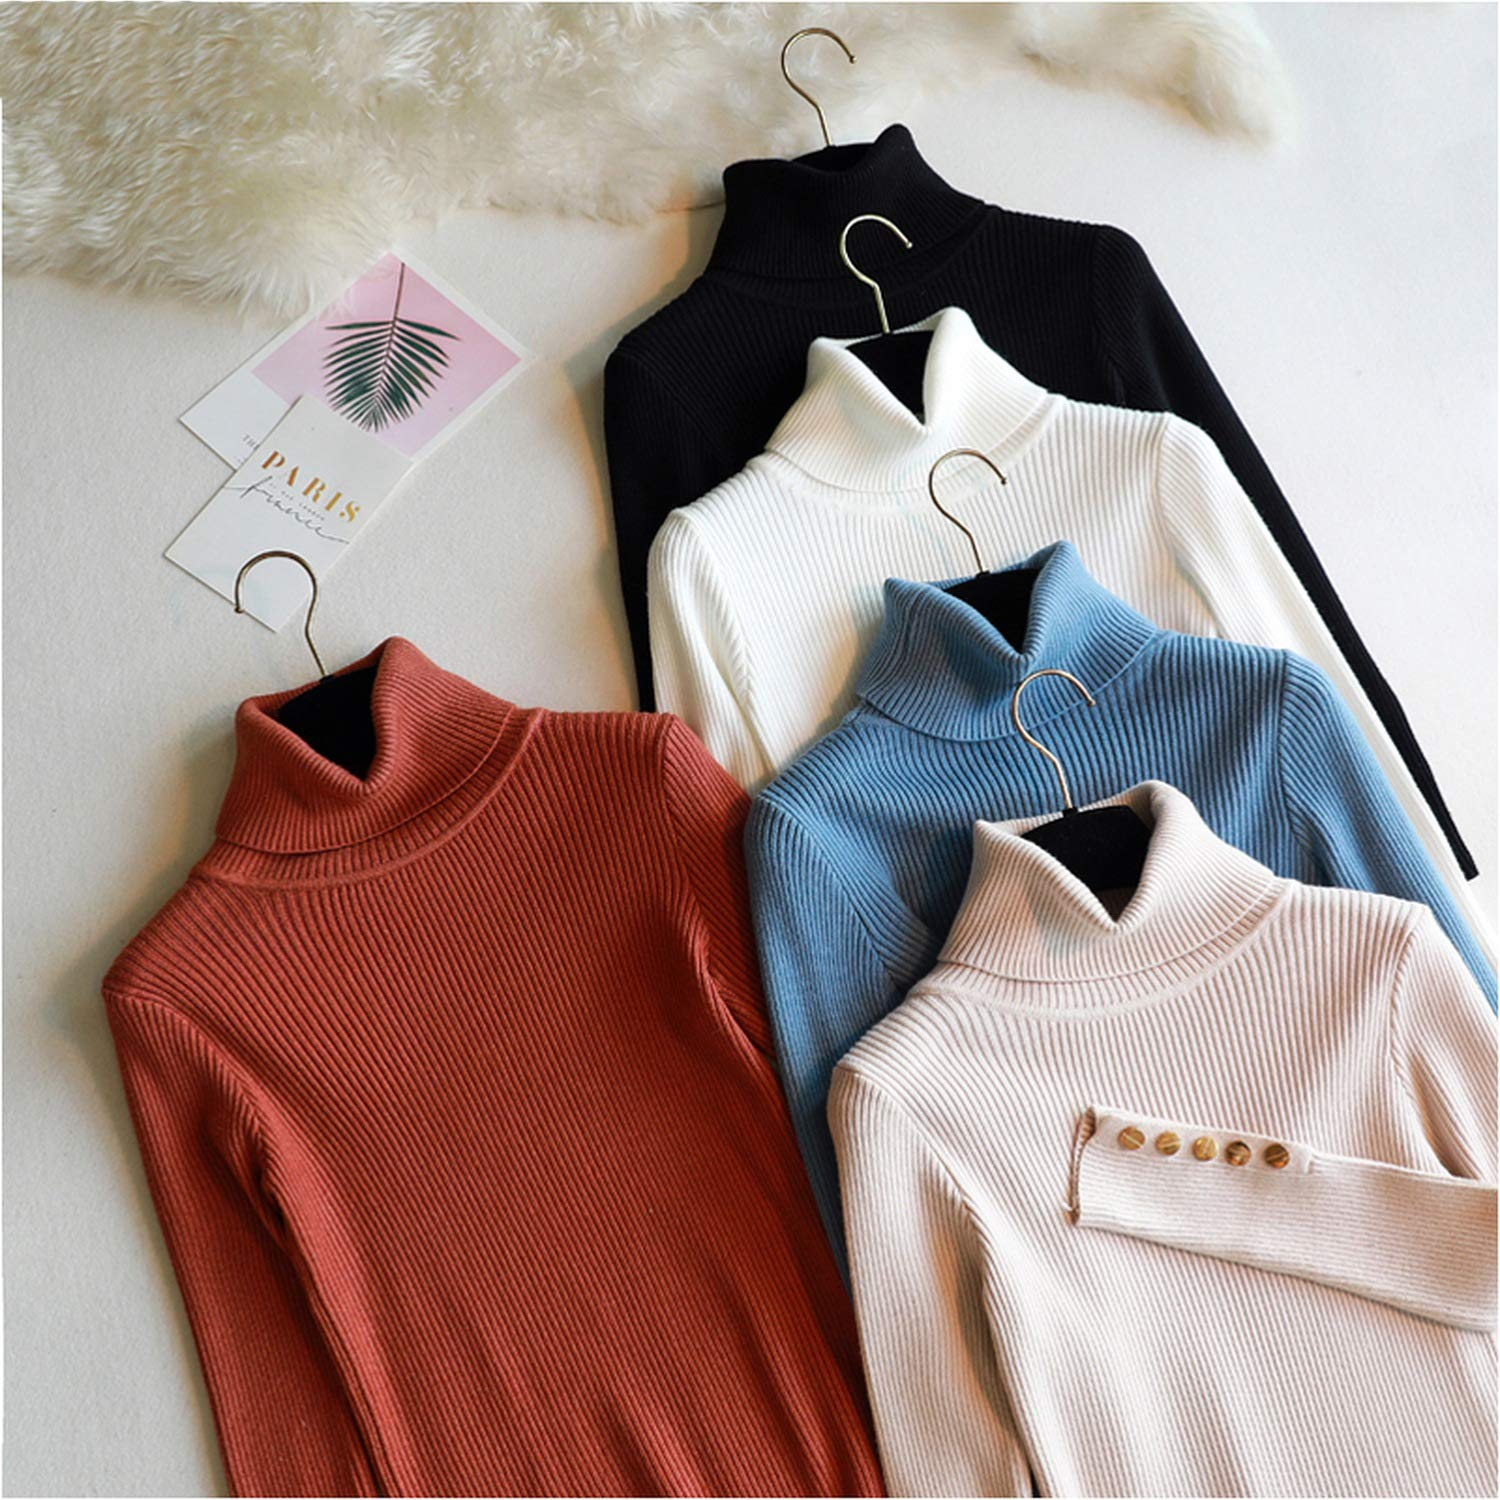 2018 Autumn Winter Women Thick Sweater Pullovers Long Sleeve Button Turtleneck Chic Sweater Female Solid Knit Top Soft Warm